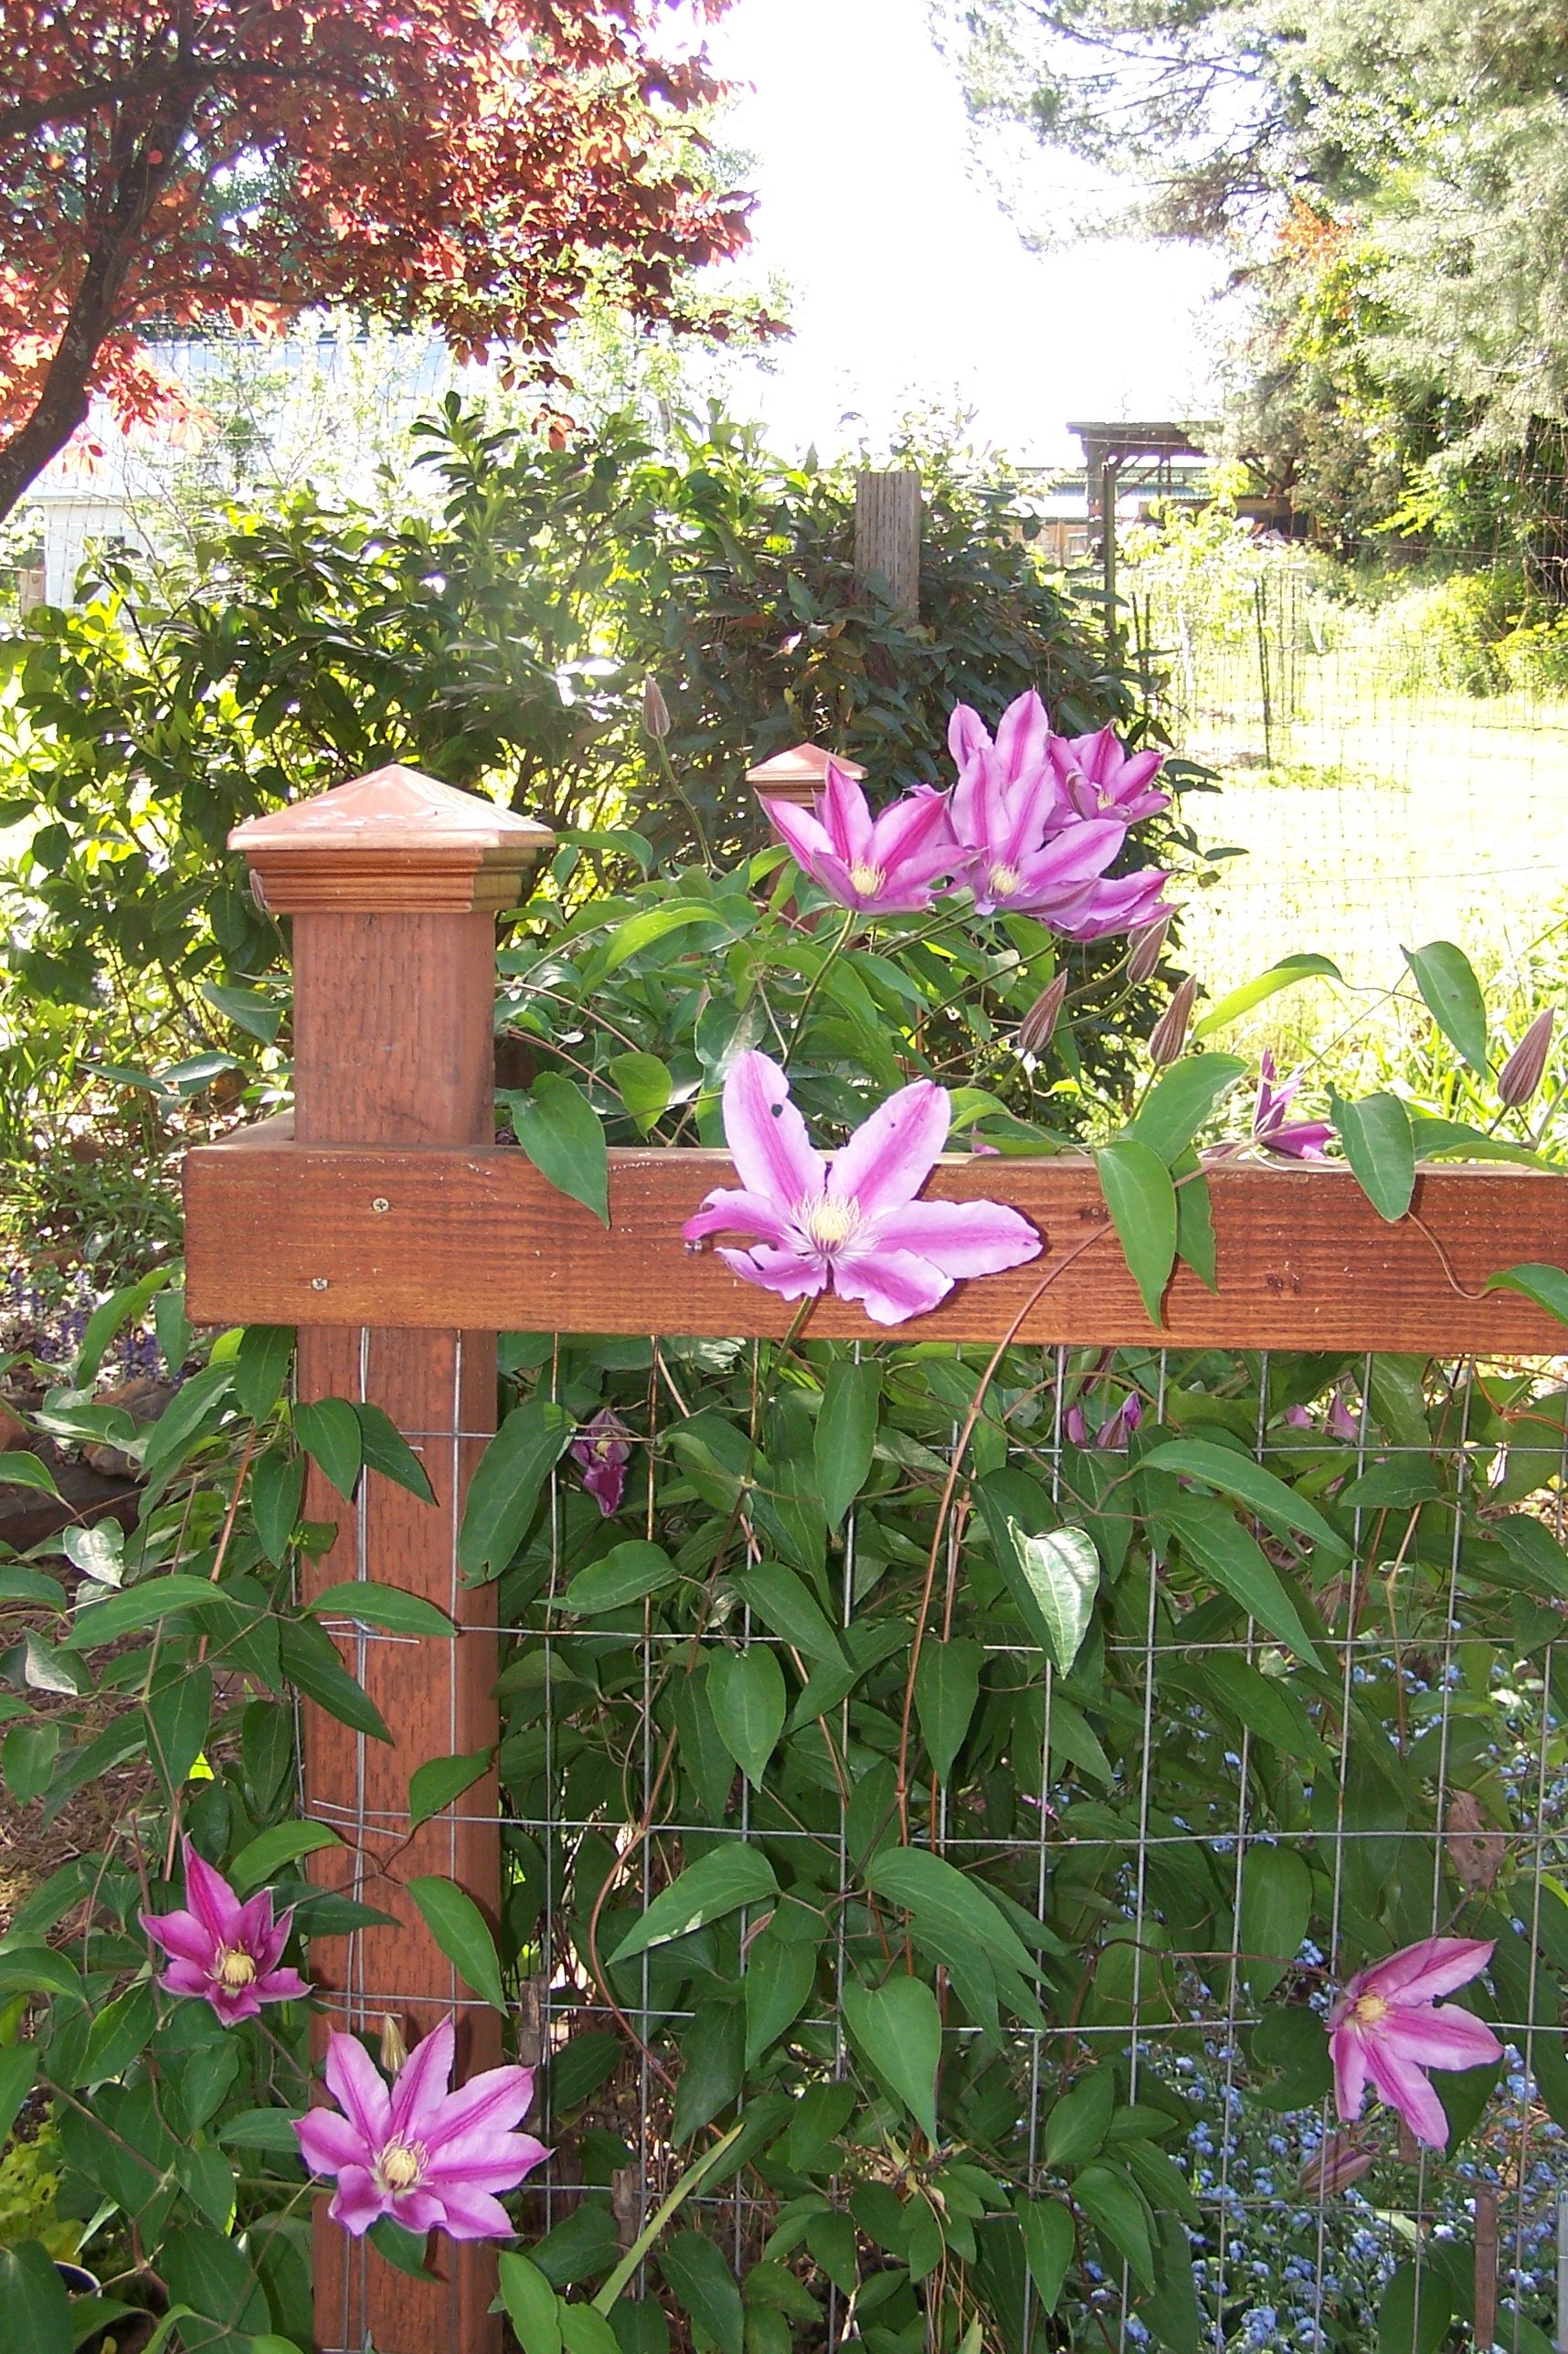 Clematis 'Sugar Candy' on garden fence